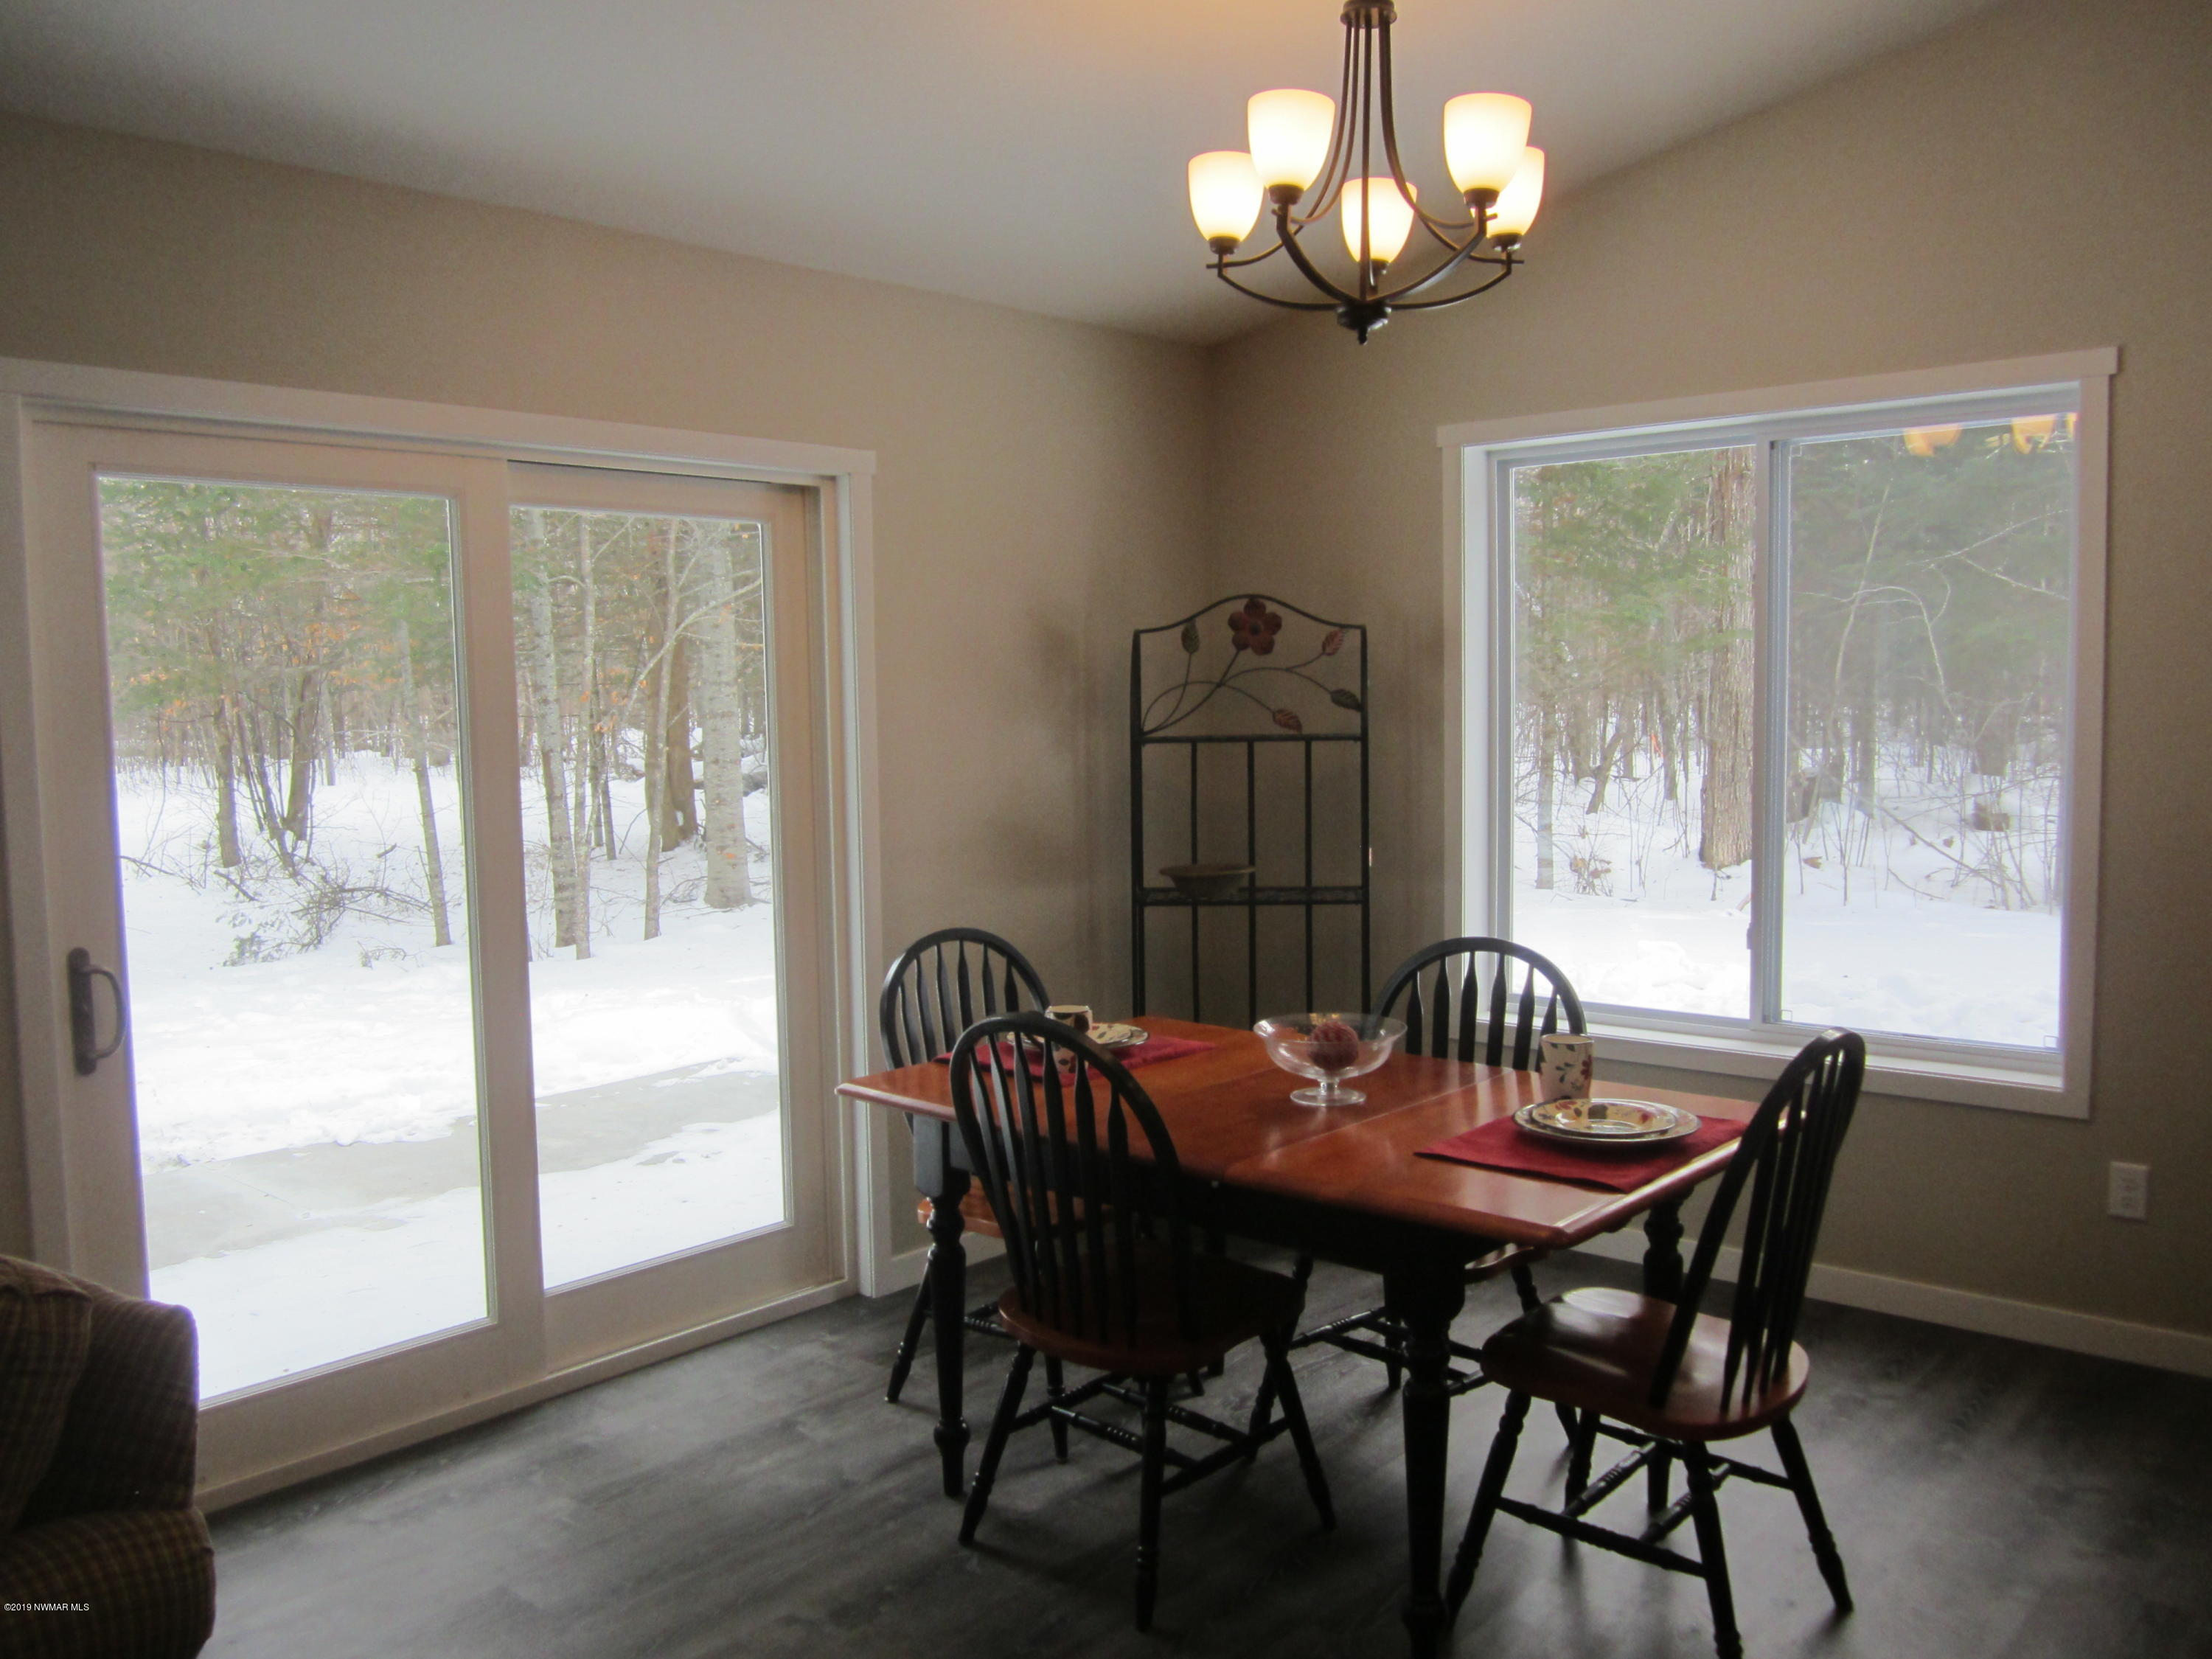 Dining room with a view!